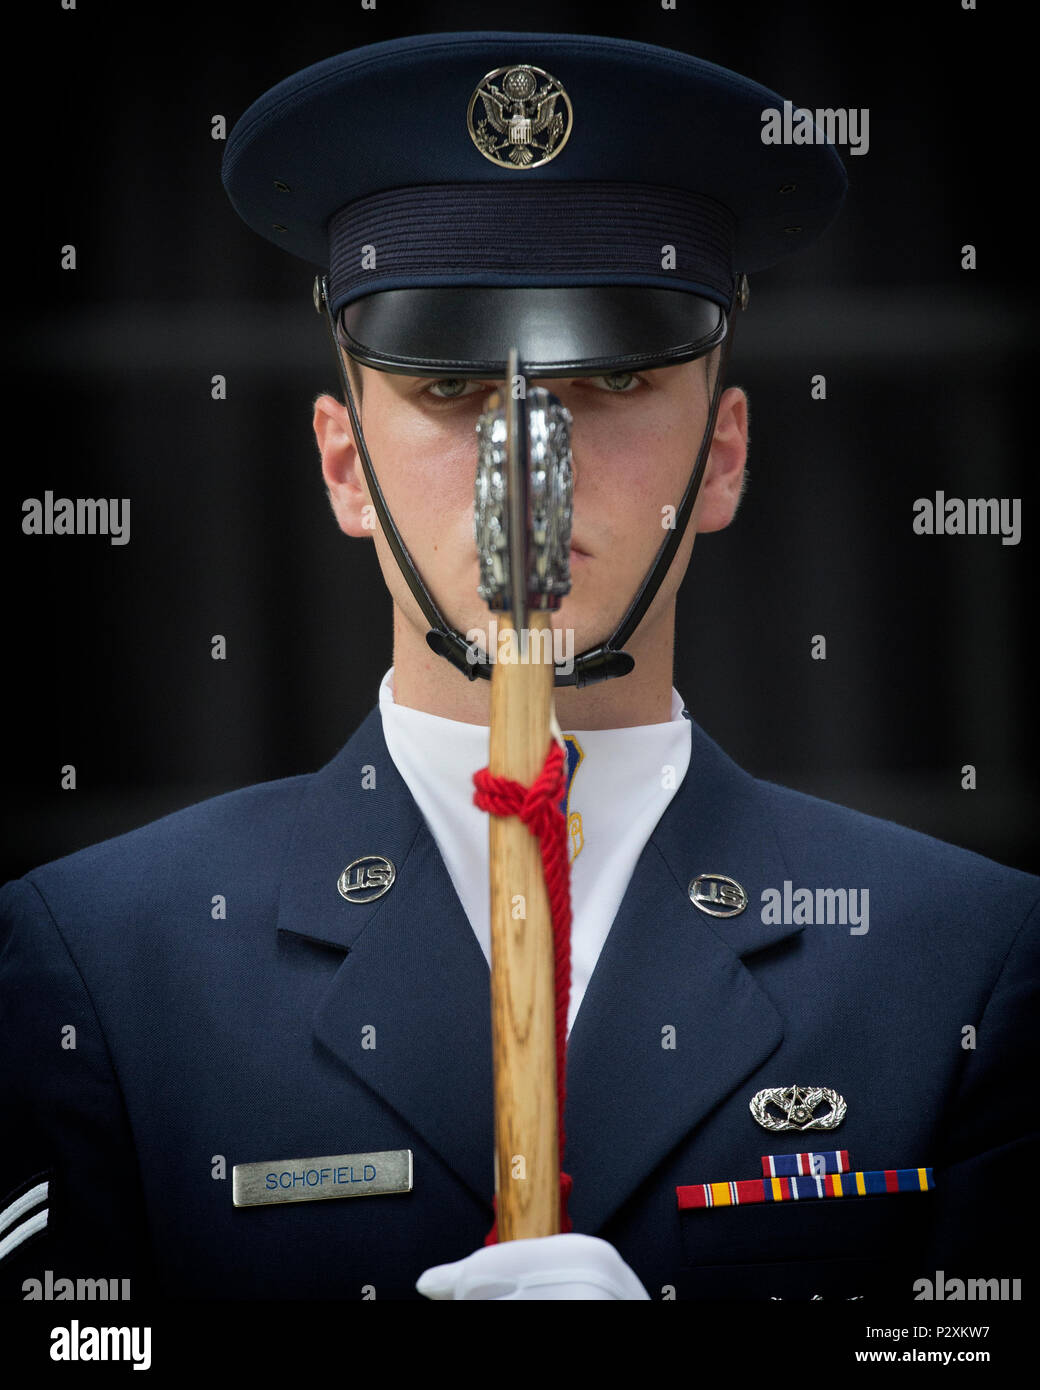 Ceremonial Axe Stock Photos & Ceremonial Axe Stock Images